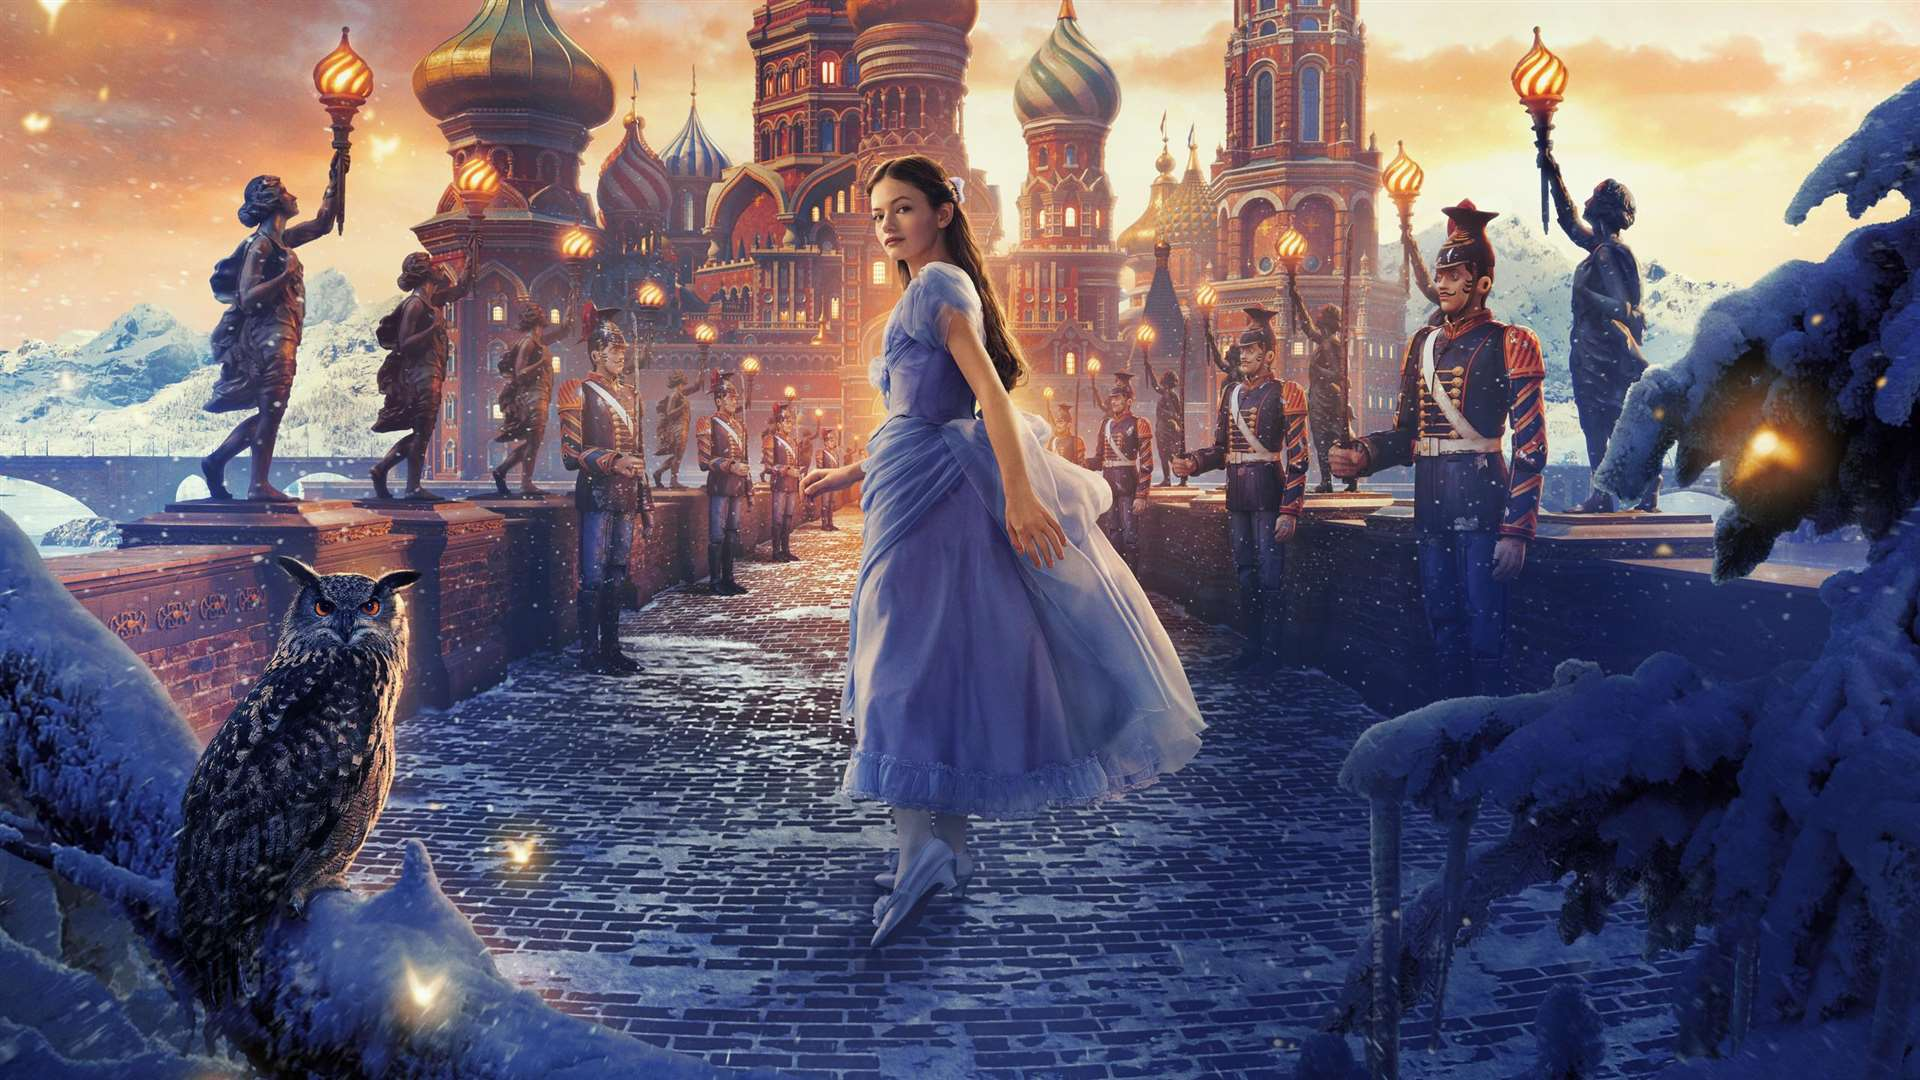 Disney's The Nutcracker and the Four Realms showing this weekend at the Paul Greengrass Cinema